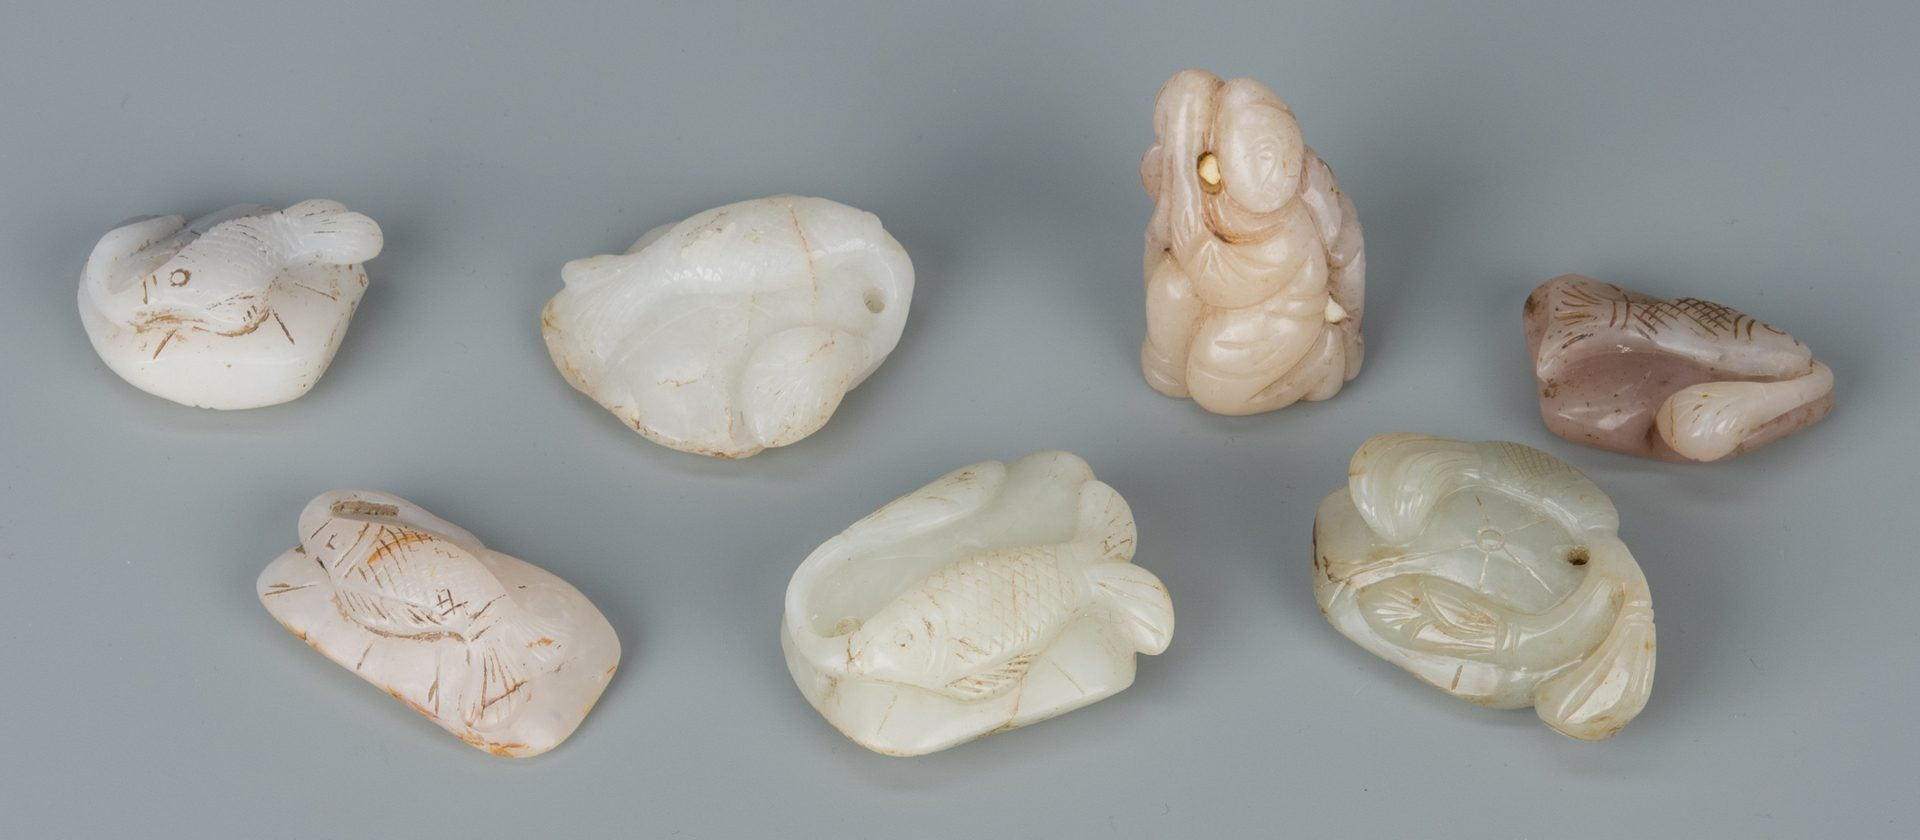 Lot 586: 7 Chinese Jade Toggles, incl. Fish